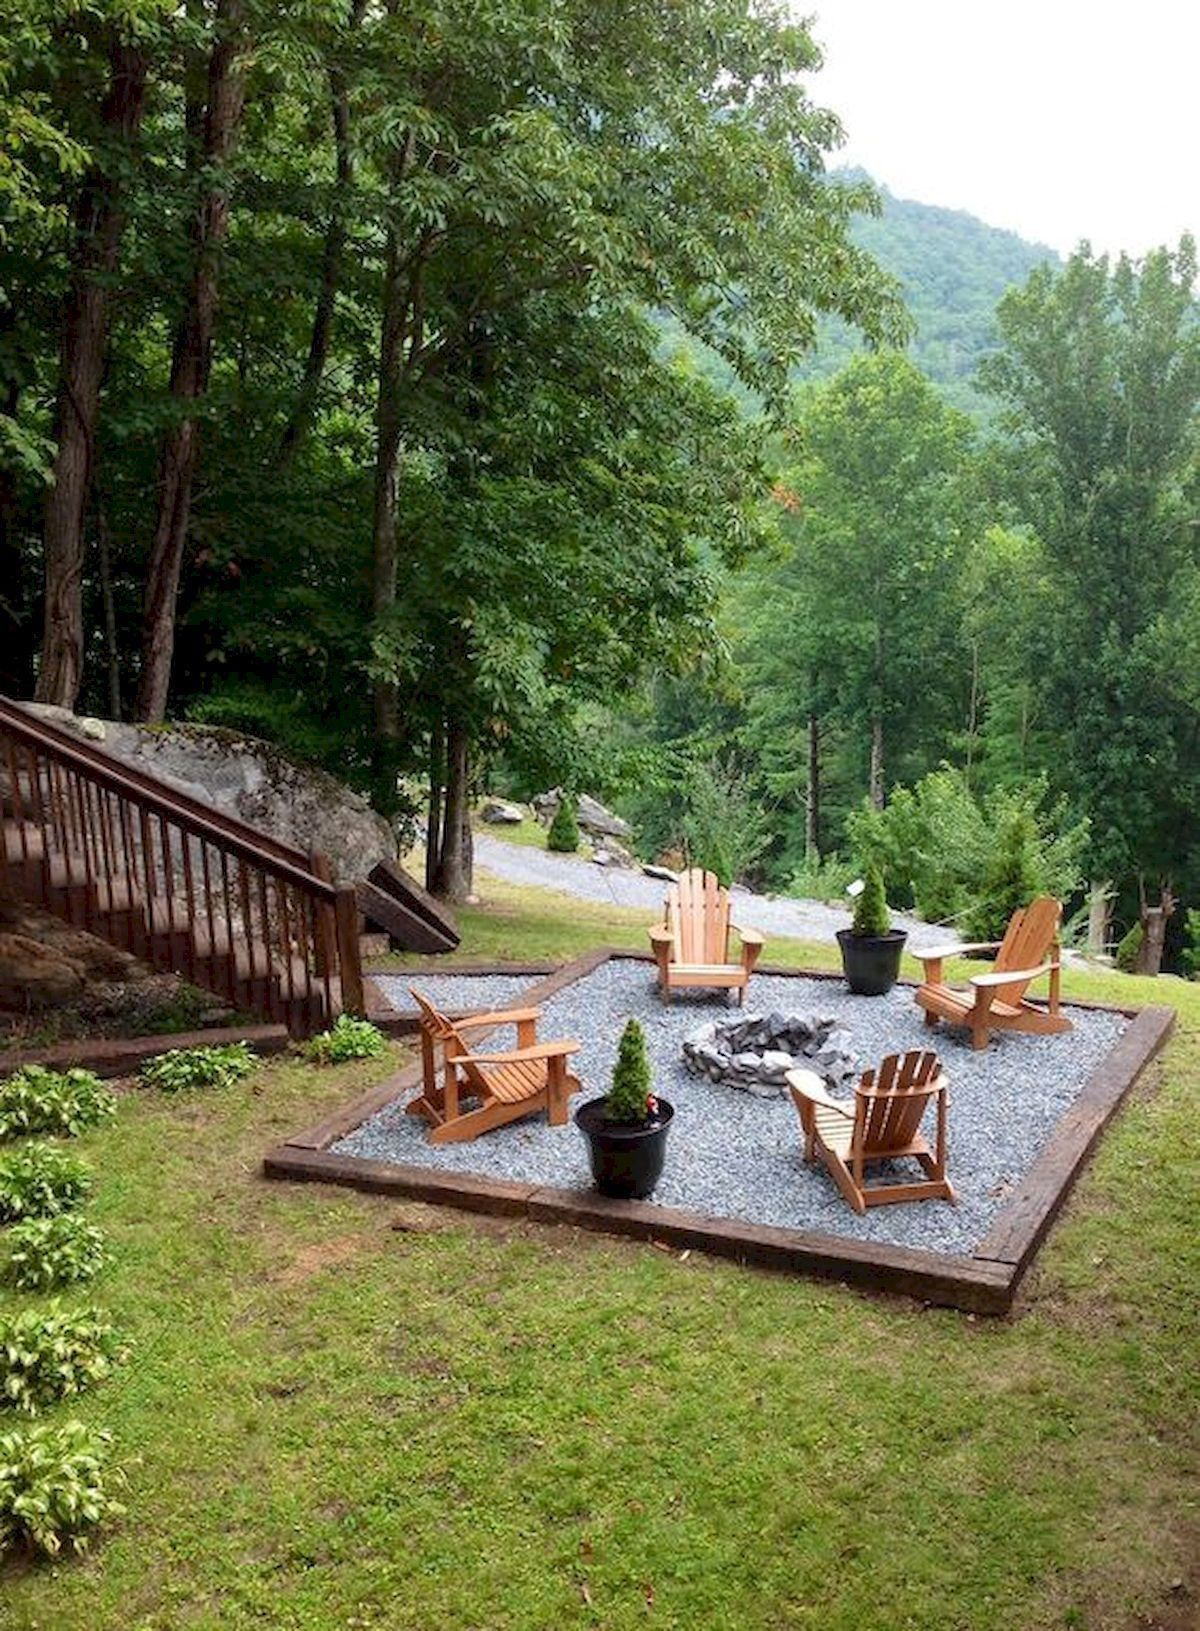 Pin by Autumn Jacunski on Patio's, Porches, and Pits ... on Backyard Patio Designs With Fire Pit  id=23797